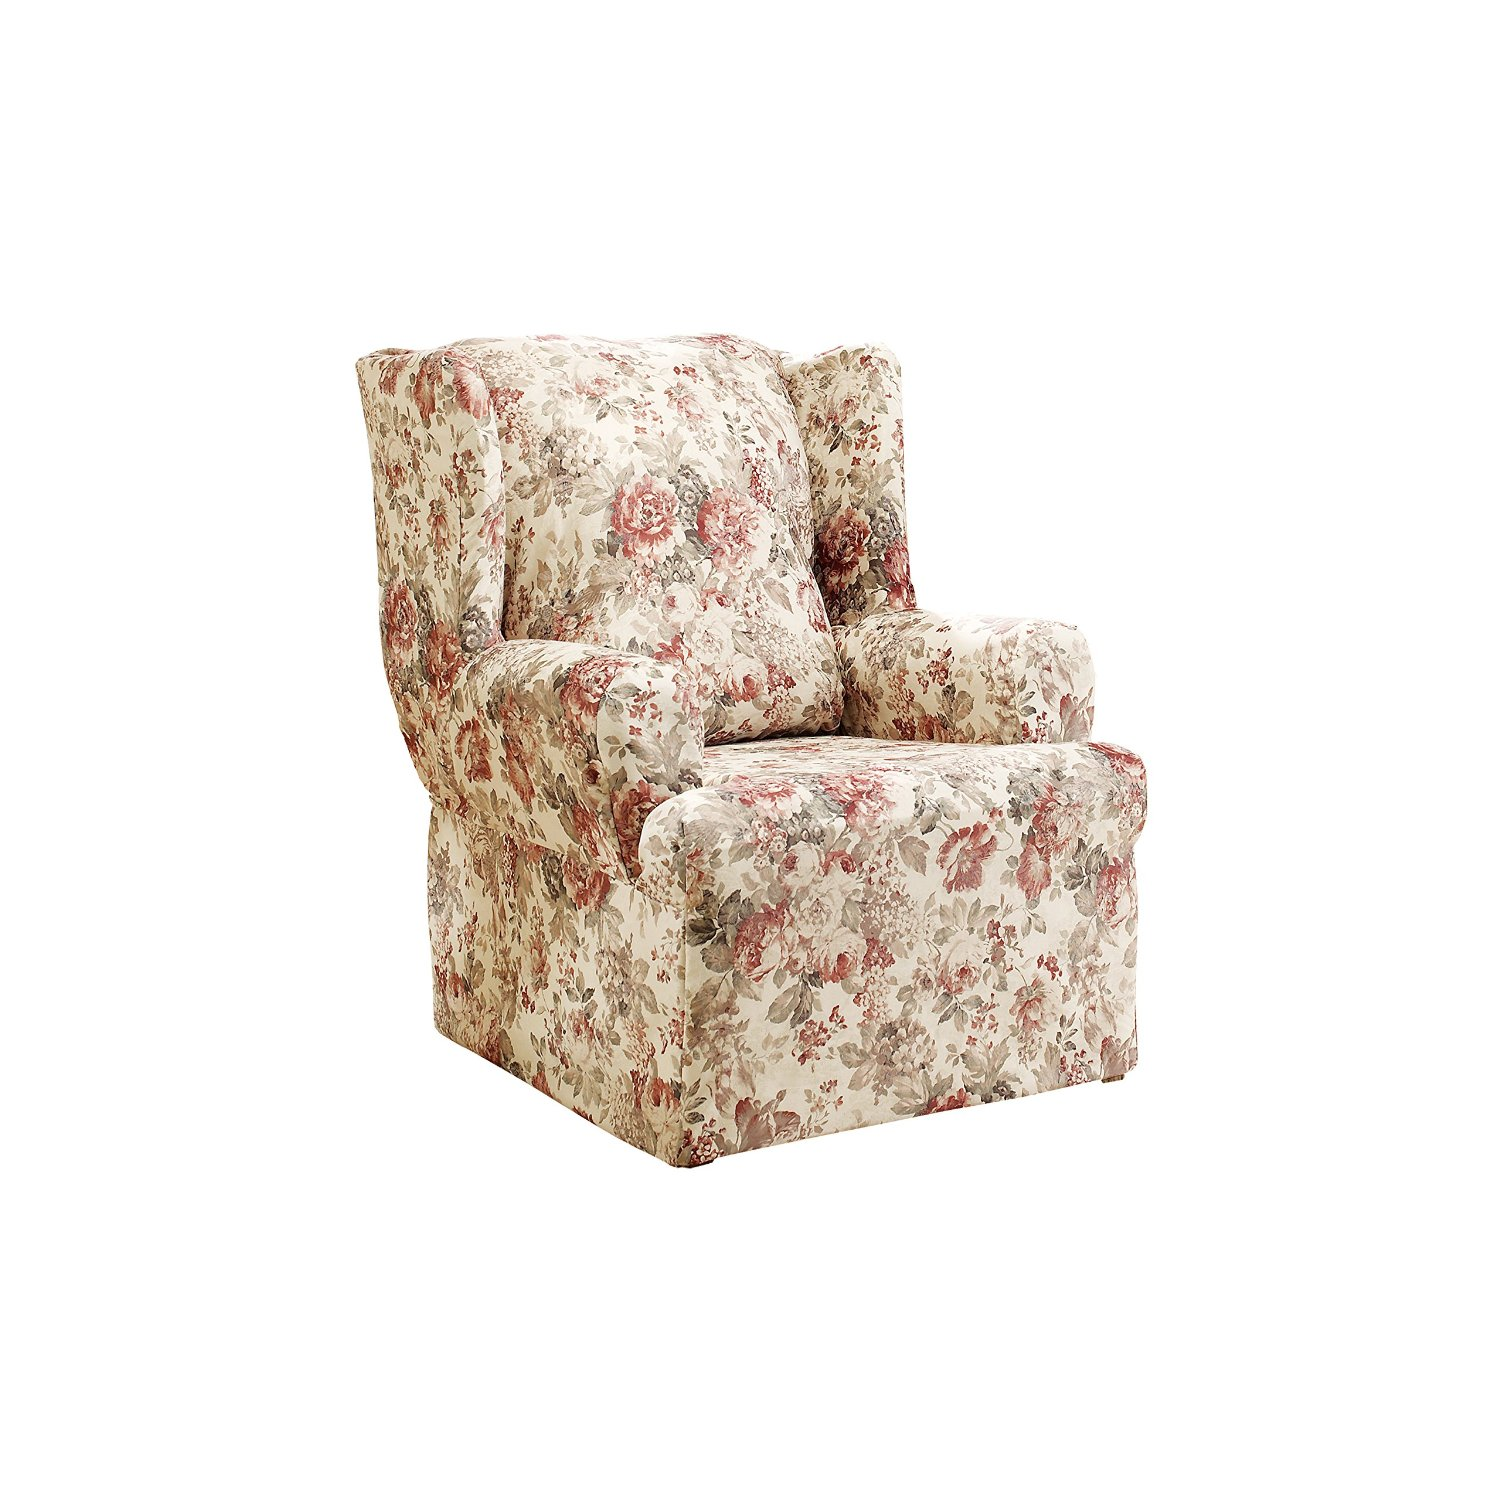 Wonderful Armback Chair With Wingback Chair Slipcover In Chic Floral Pattern For Home Furniture Ideas